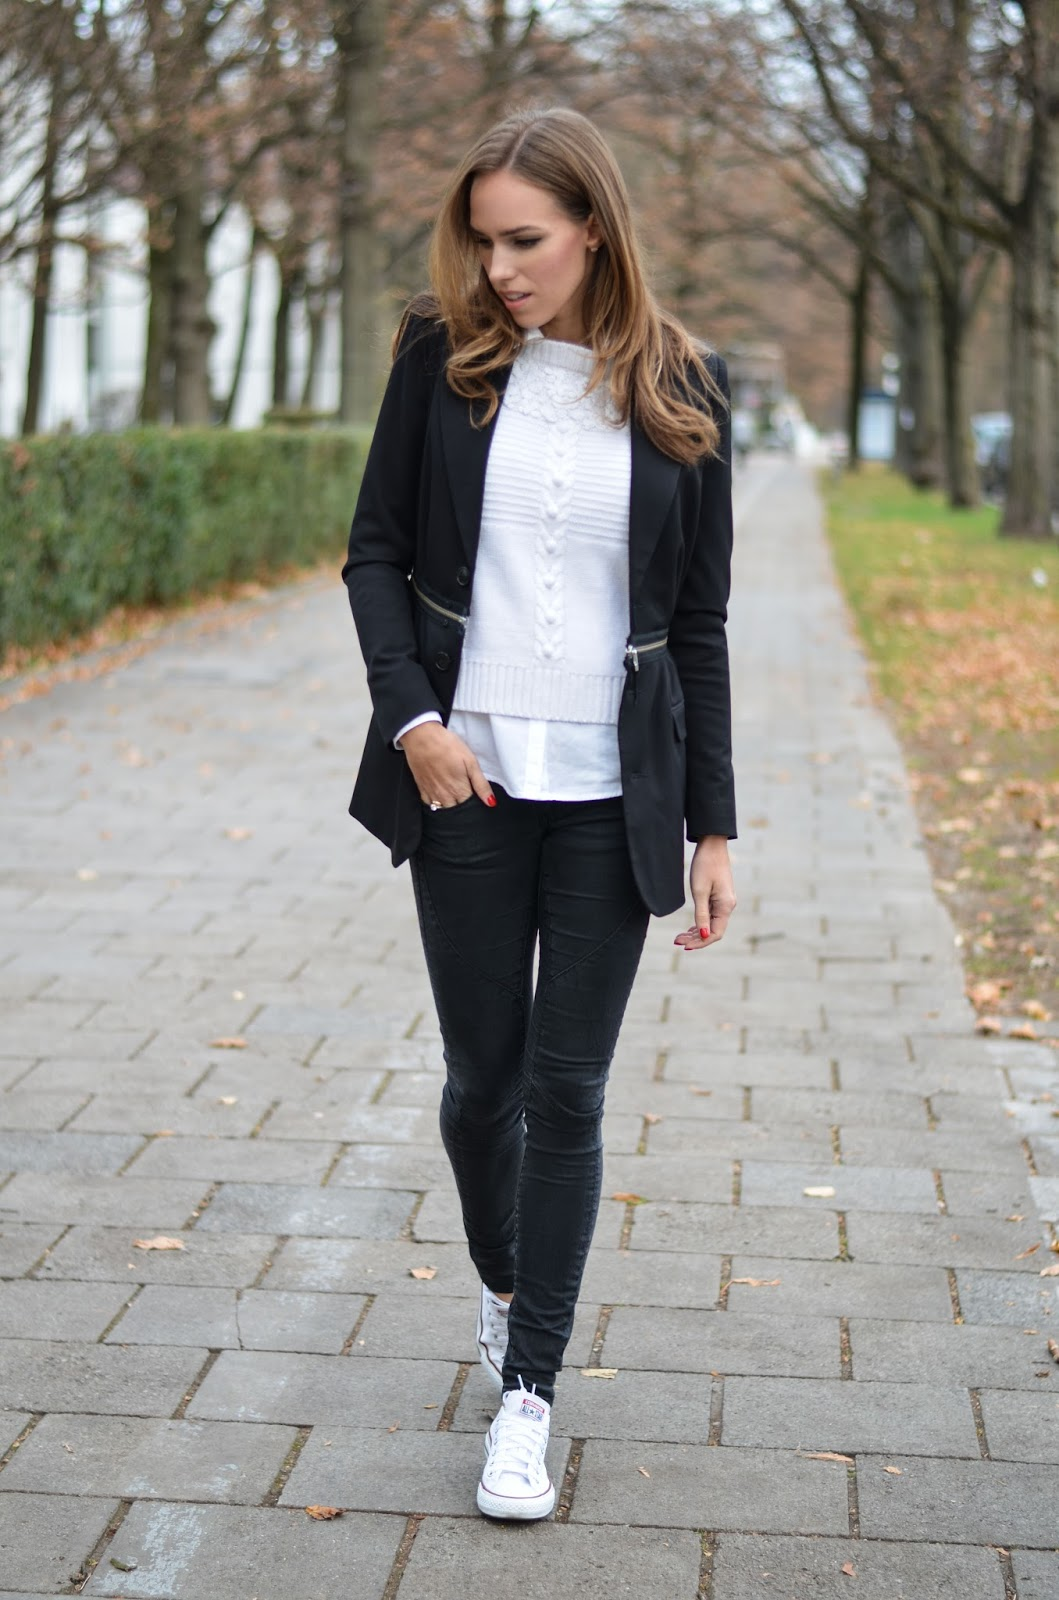 kristjaana mere black white casual fall outfit blazer sneakers fashion